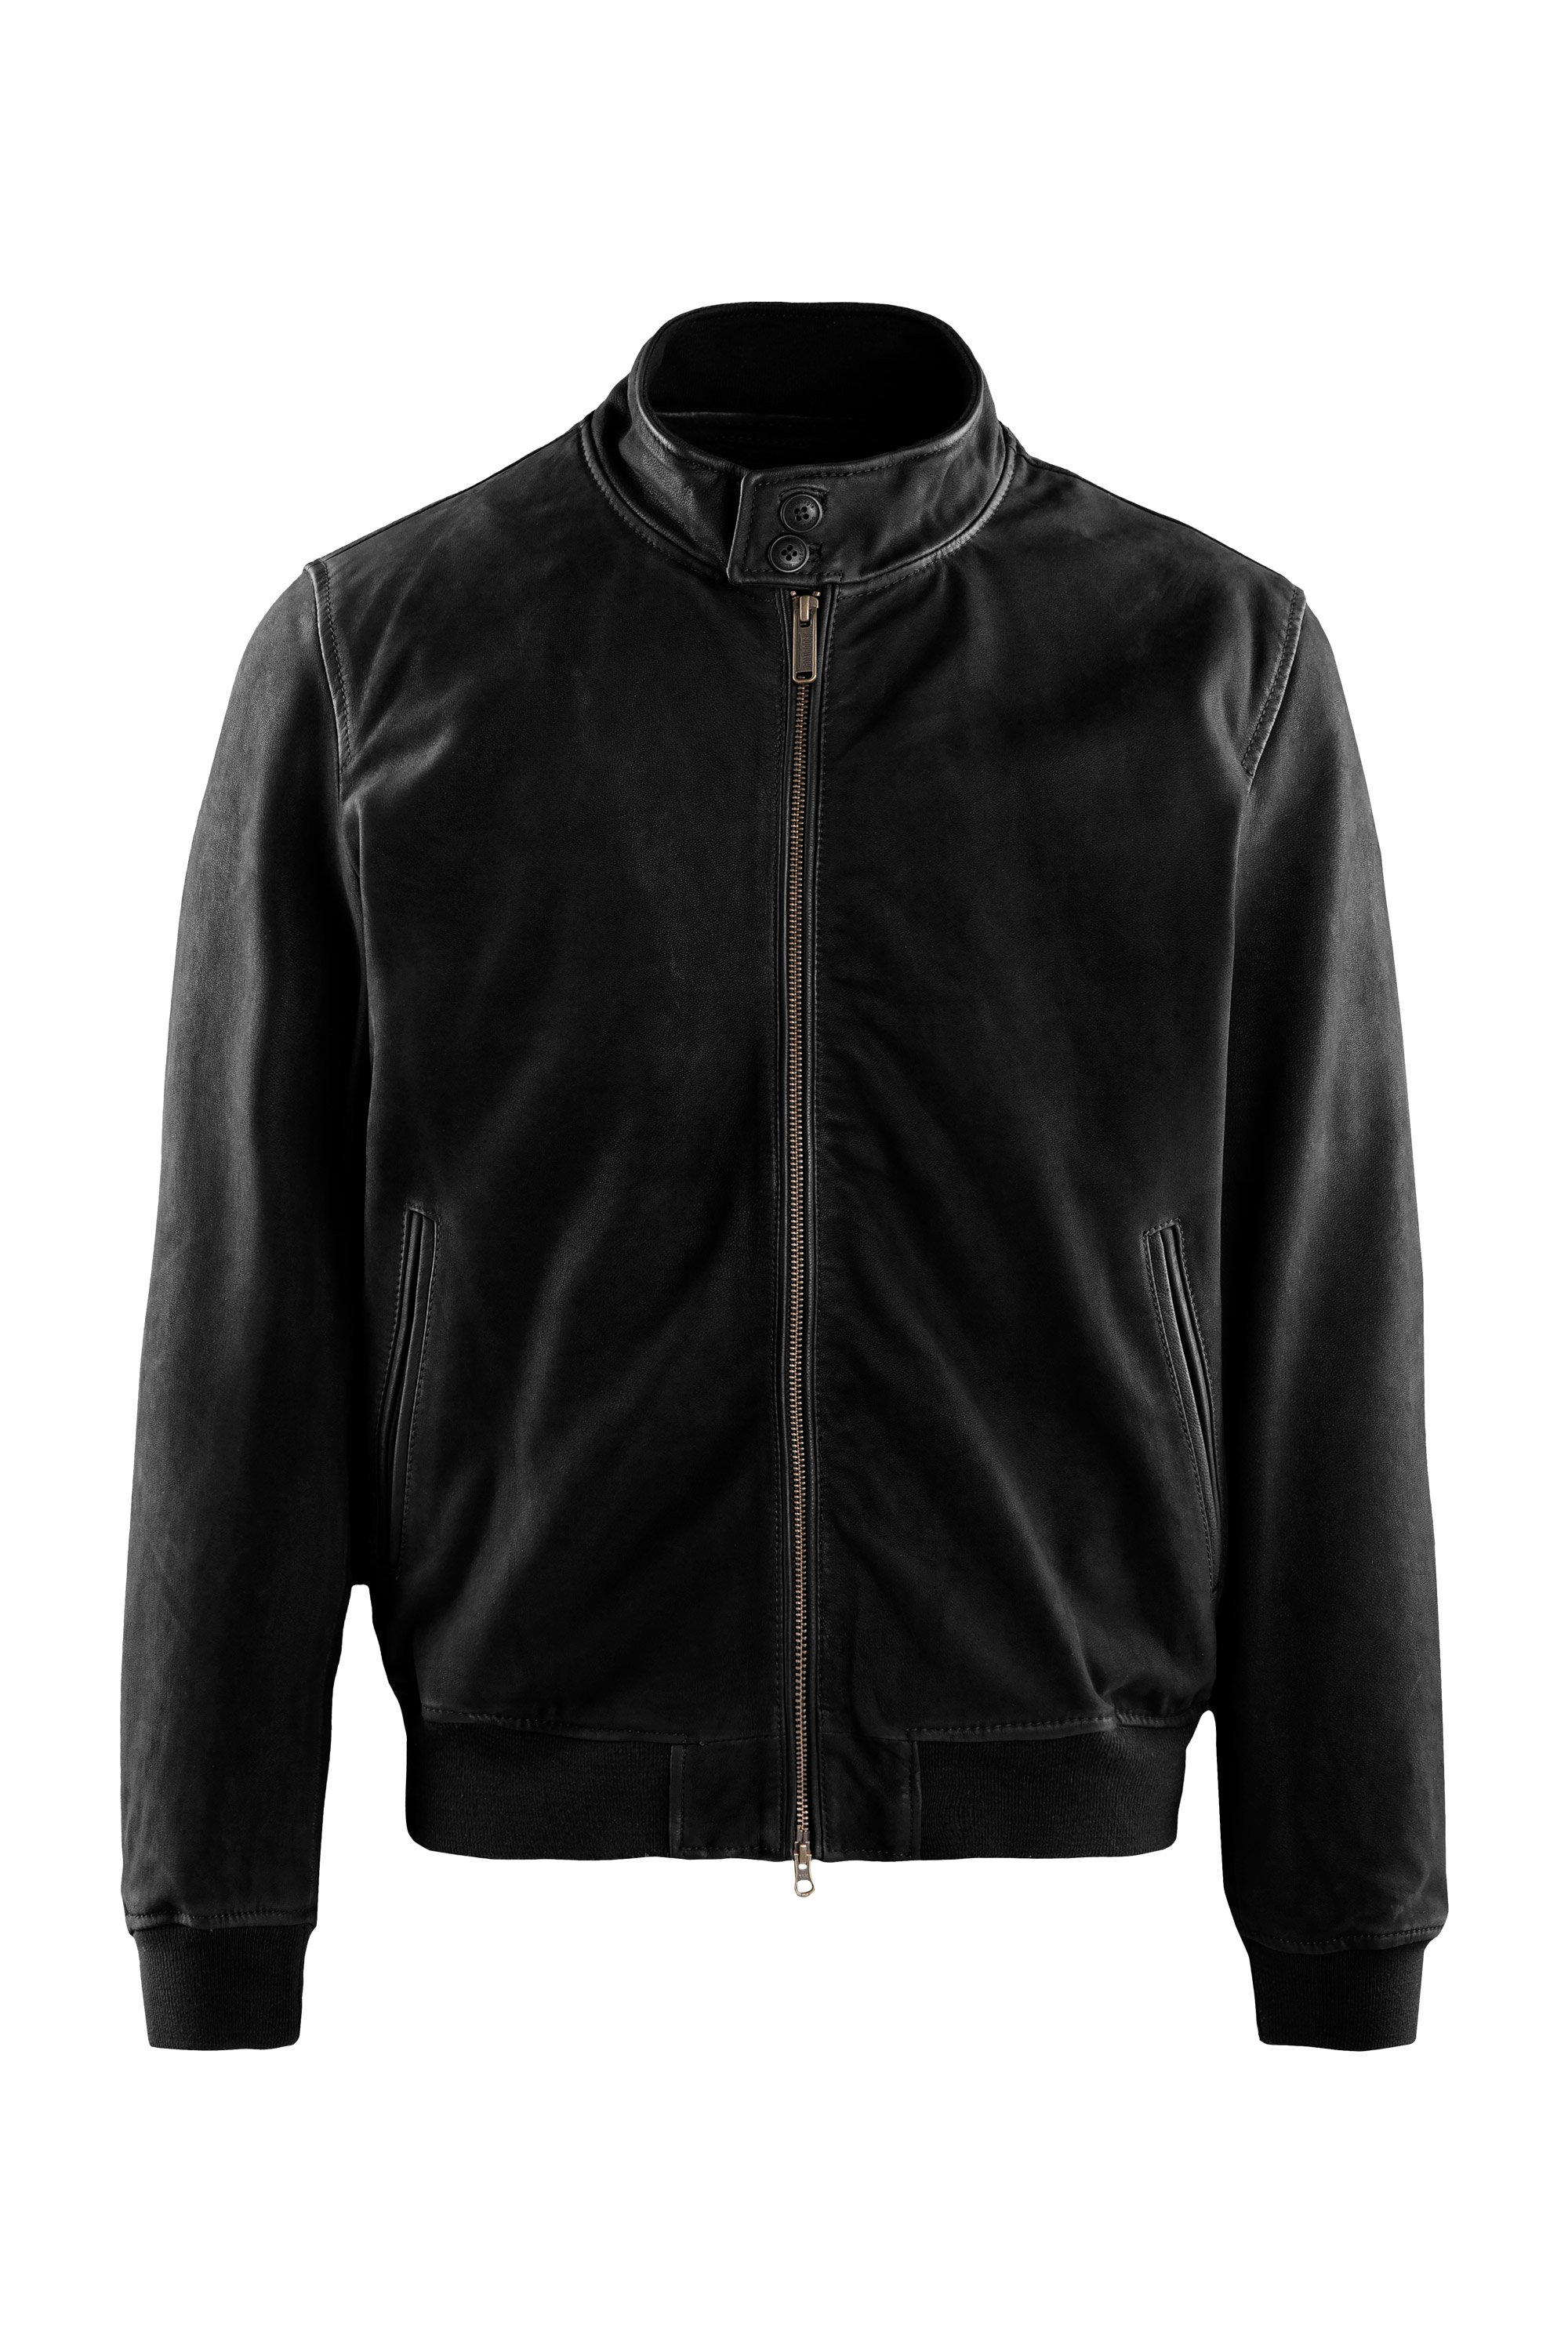 Friz nabuk leather bomber jacket